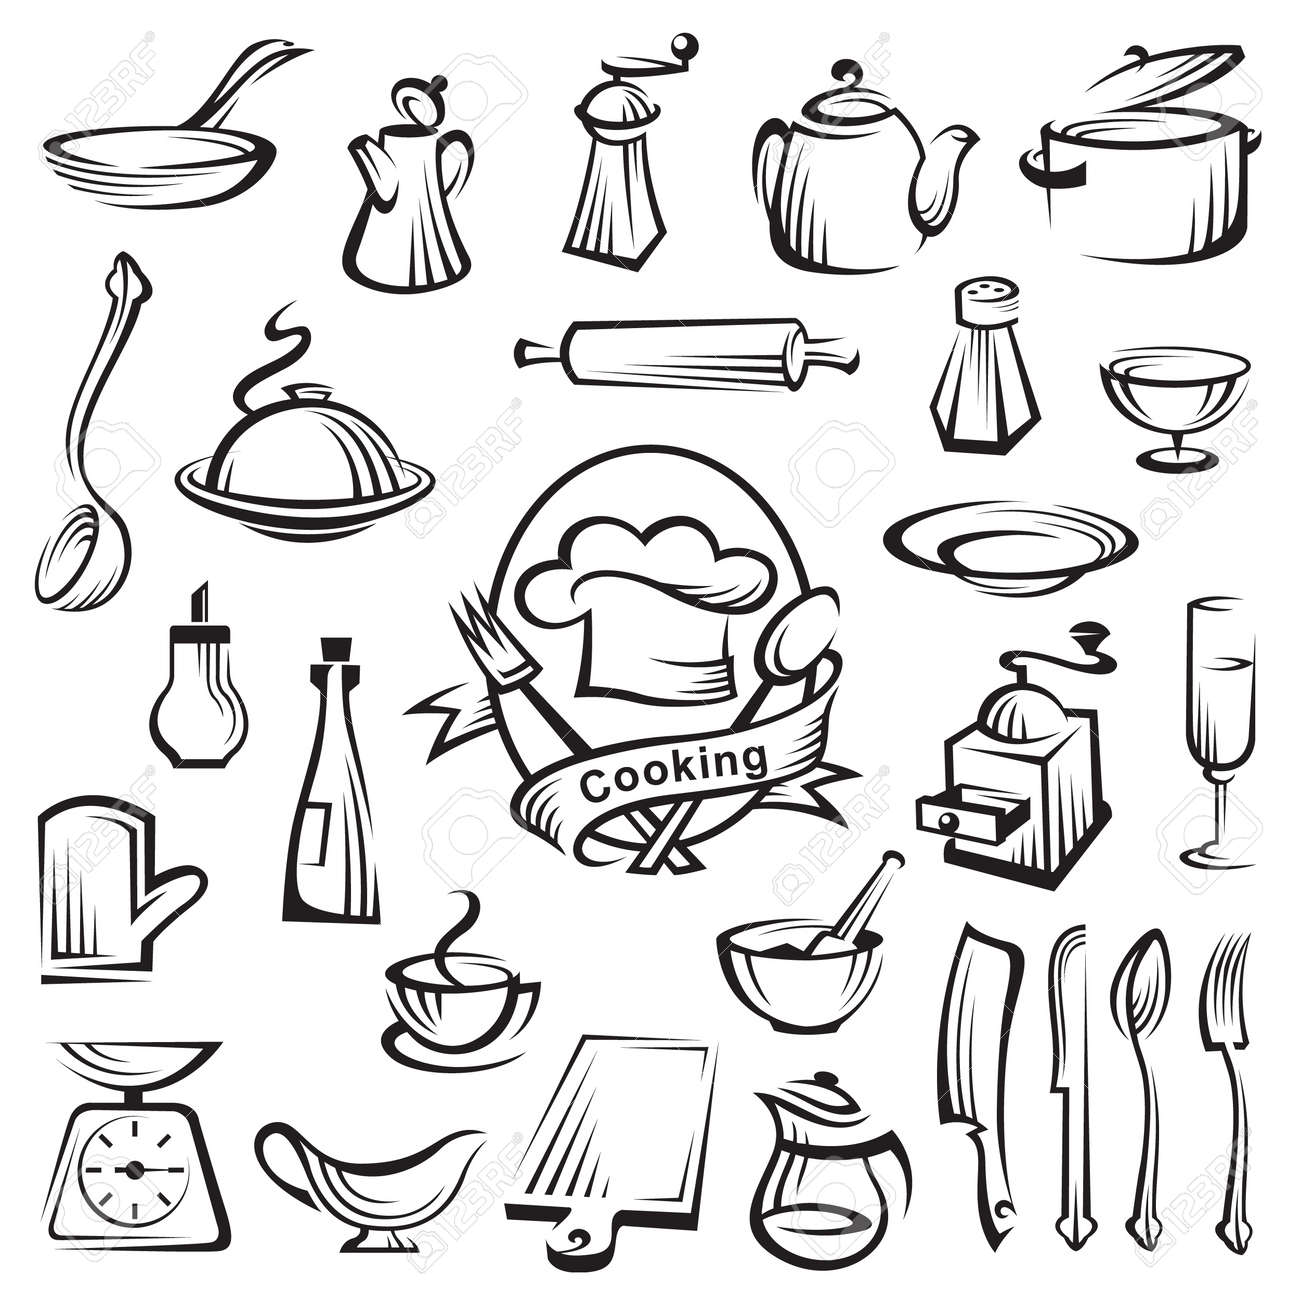 Kitchen Tools Drawing Kitchen Tools And Cooking Design Elements Royalty Free Cliparts